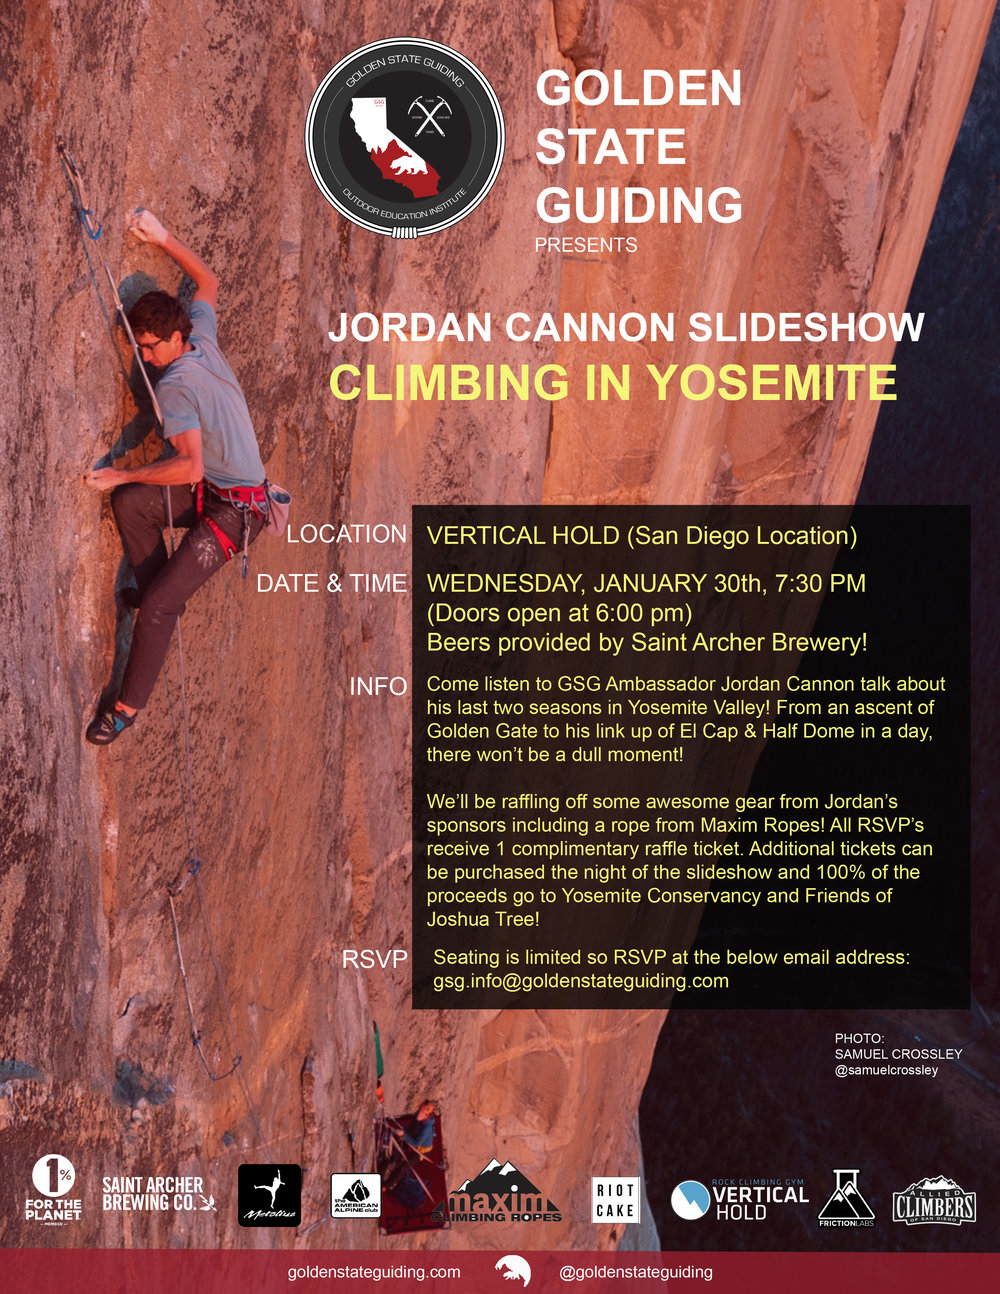 Jordan Cannon Slideshow Flyer.jpg